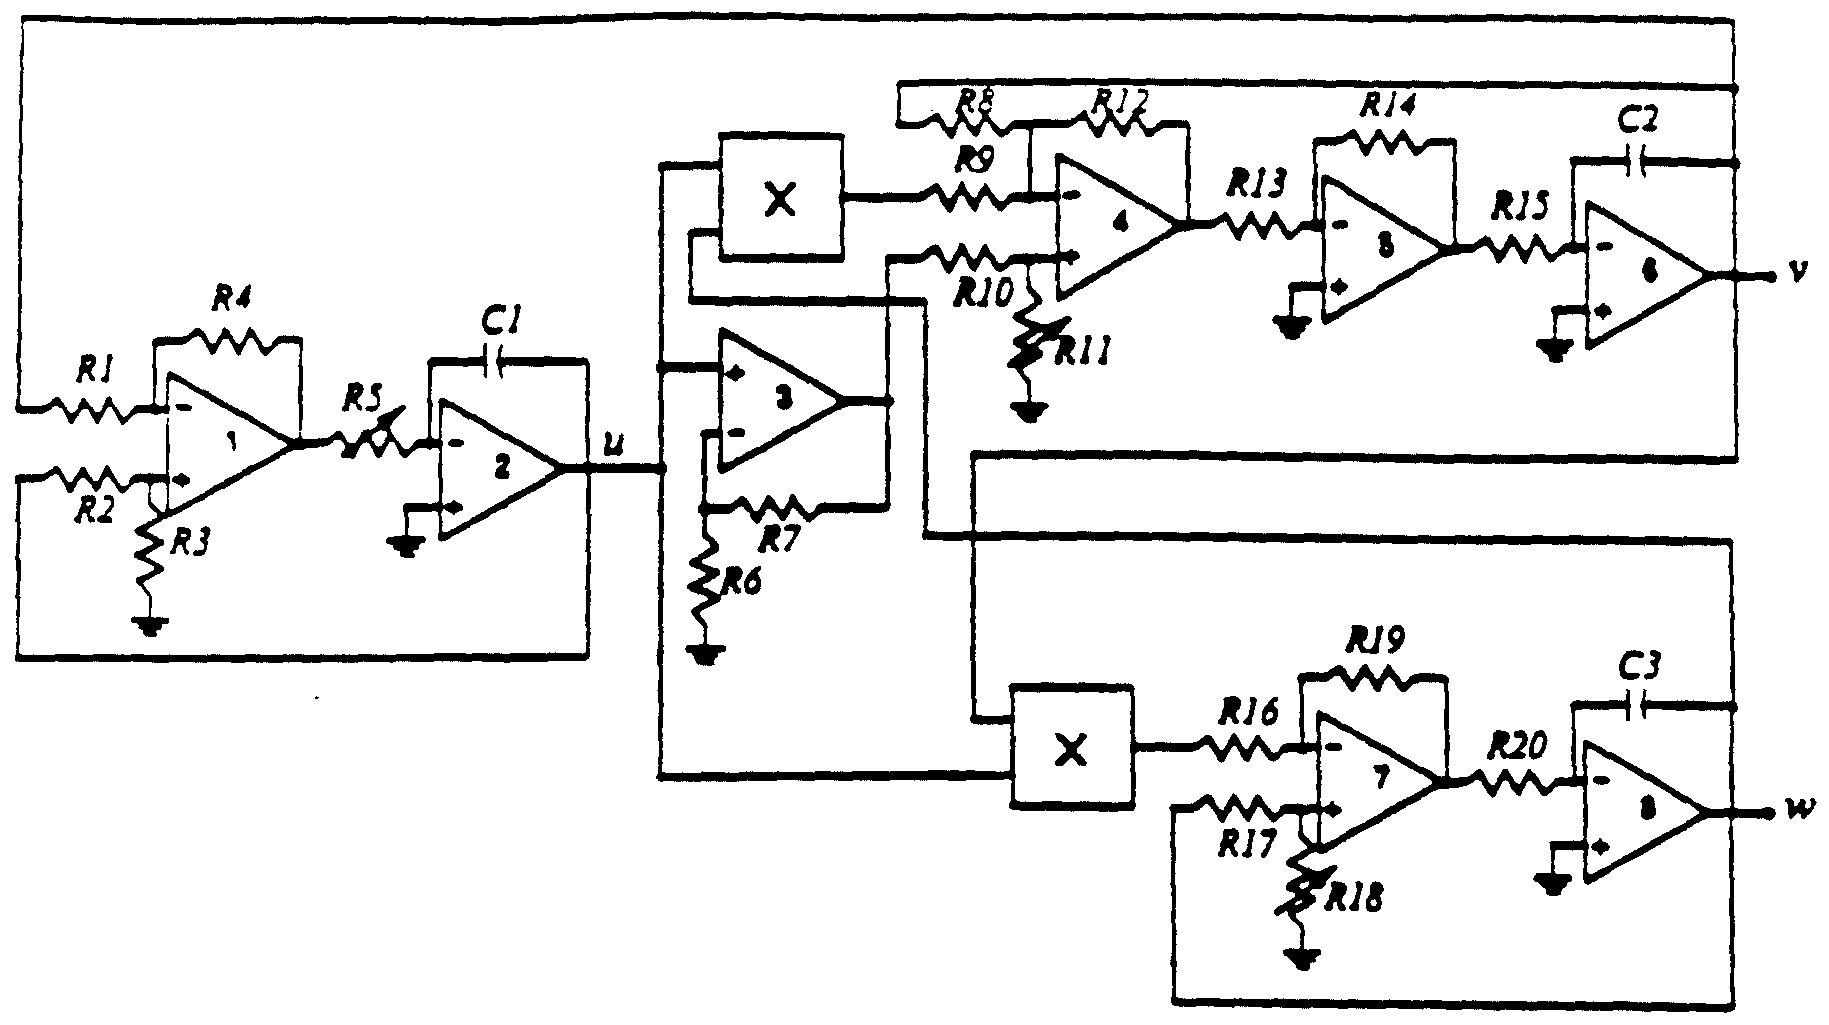 imgf000030_0001 crabtree 2 way dimmer switch wiring diagram wiring diagram,Wiring Diagram For Amp